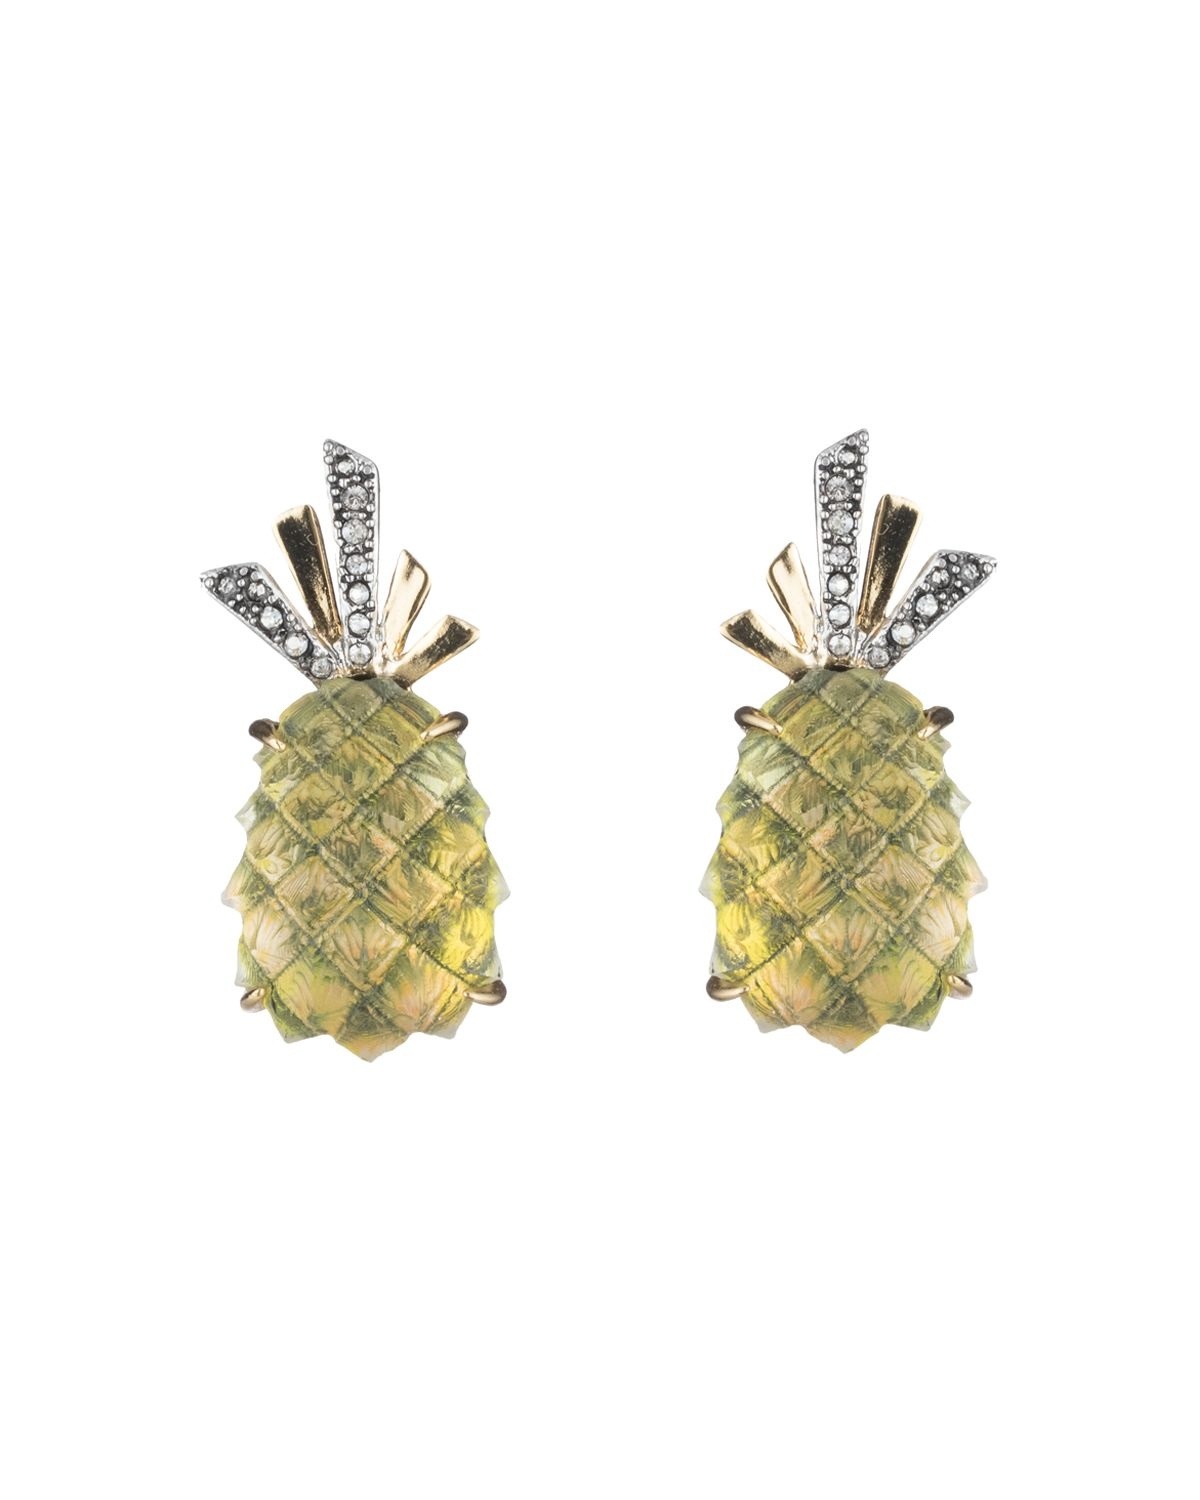 Alexis Bittar Pineapple Lucite Clip-On Earrings Xor3lhNi9